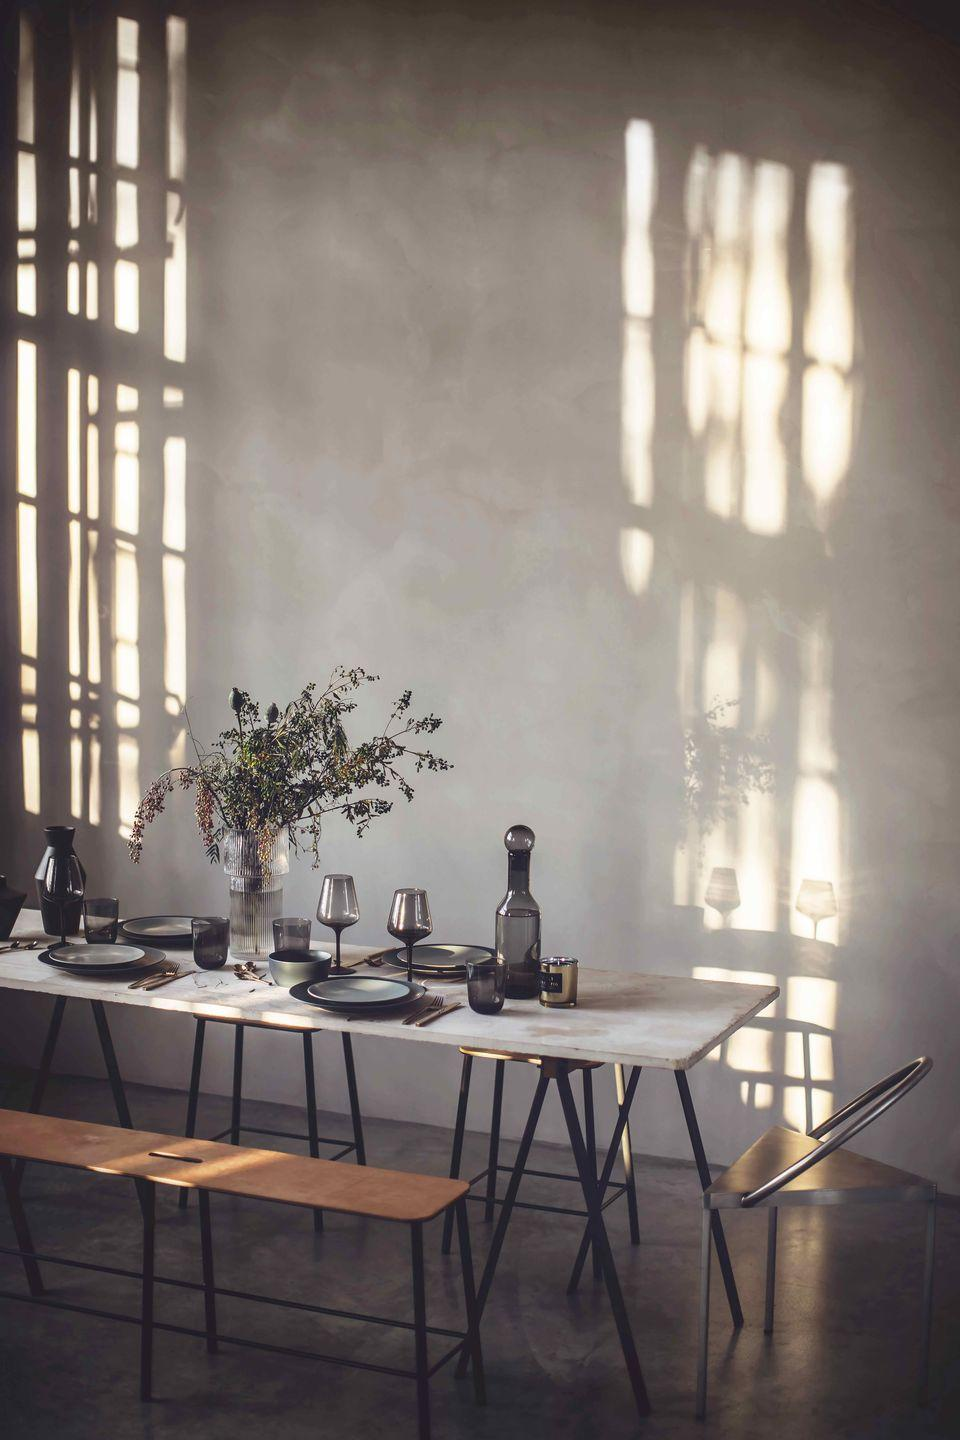 """<p>Let your tableware do the talking with beautiful smoky grey glass in clean shapes that lets the light shine through. Limited decoration required, this is all about simple, elegant styling, care of Our Food Stories.</p><p>'Trestle' <strong>table</strong>, approx £2,152; 'Triangolo' <strong>chairs </strong>in Steel, approx £904; 'Adam' <strong>bench</strong>, approx £603, all Frama (<u><a href=""""https://framacph.com/?gclid=Cj0KCQiAhs79BRD0ARIsAC6XpaUyvKUJWJXjLDnA7ilYbyFJv9zpEPNz1sd8dSCUTf0v1FmWsfQ_jRYaAhAUEALw_wcB"""" rel=""""nofollow noopener"""" target=""""_blank"""" data-ylk=""""slk:framacph.com"""" class=""""link rapid-noclick-resp"""">framacph.com</a></u>). <strong>Tableware</strong>, <strong>glassware</strong>, <strong>cutlery </strong>and <strong>glass vases</strong>, from a selection, H&M Home (hm.com)</p>"""